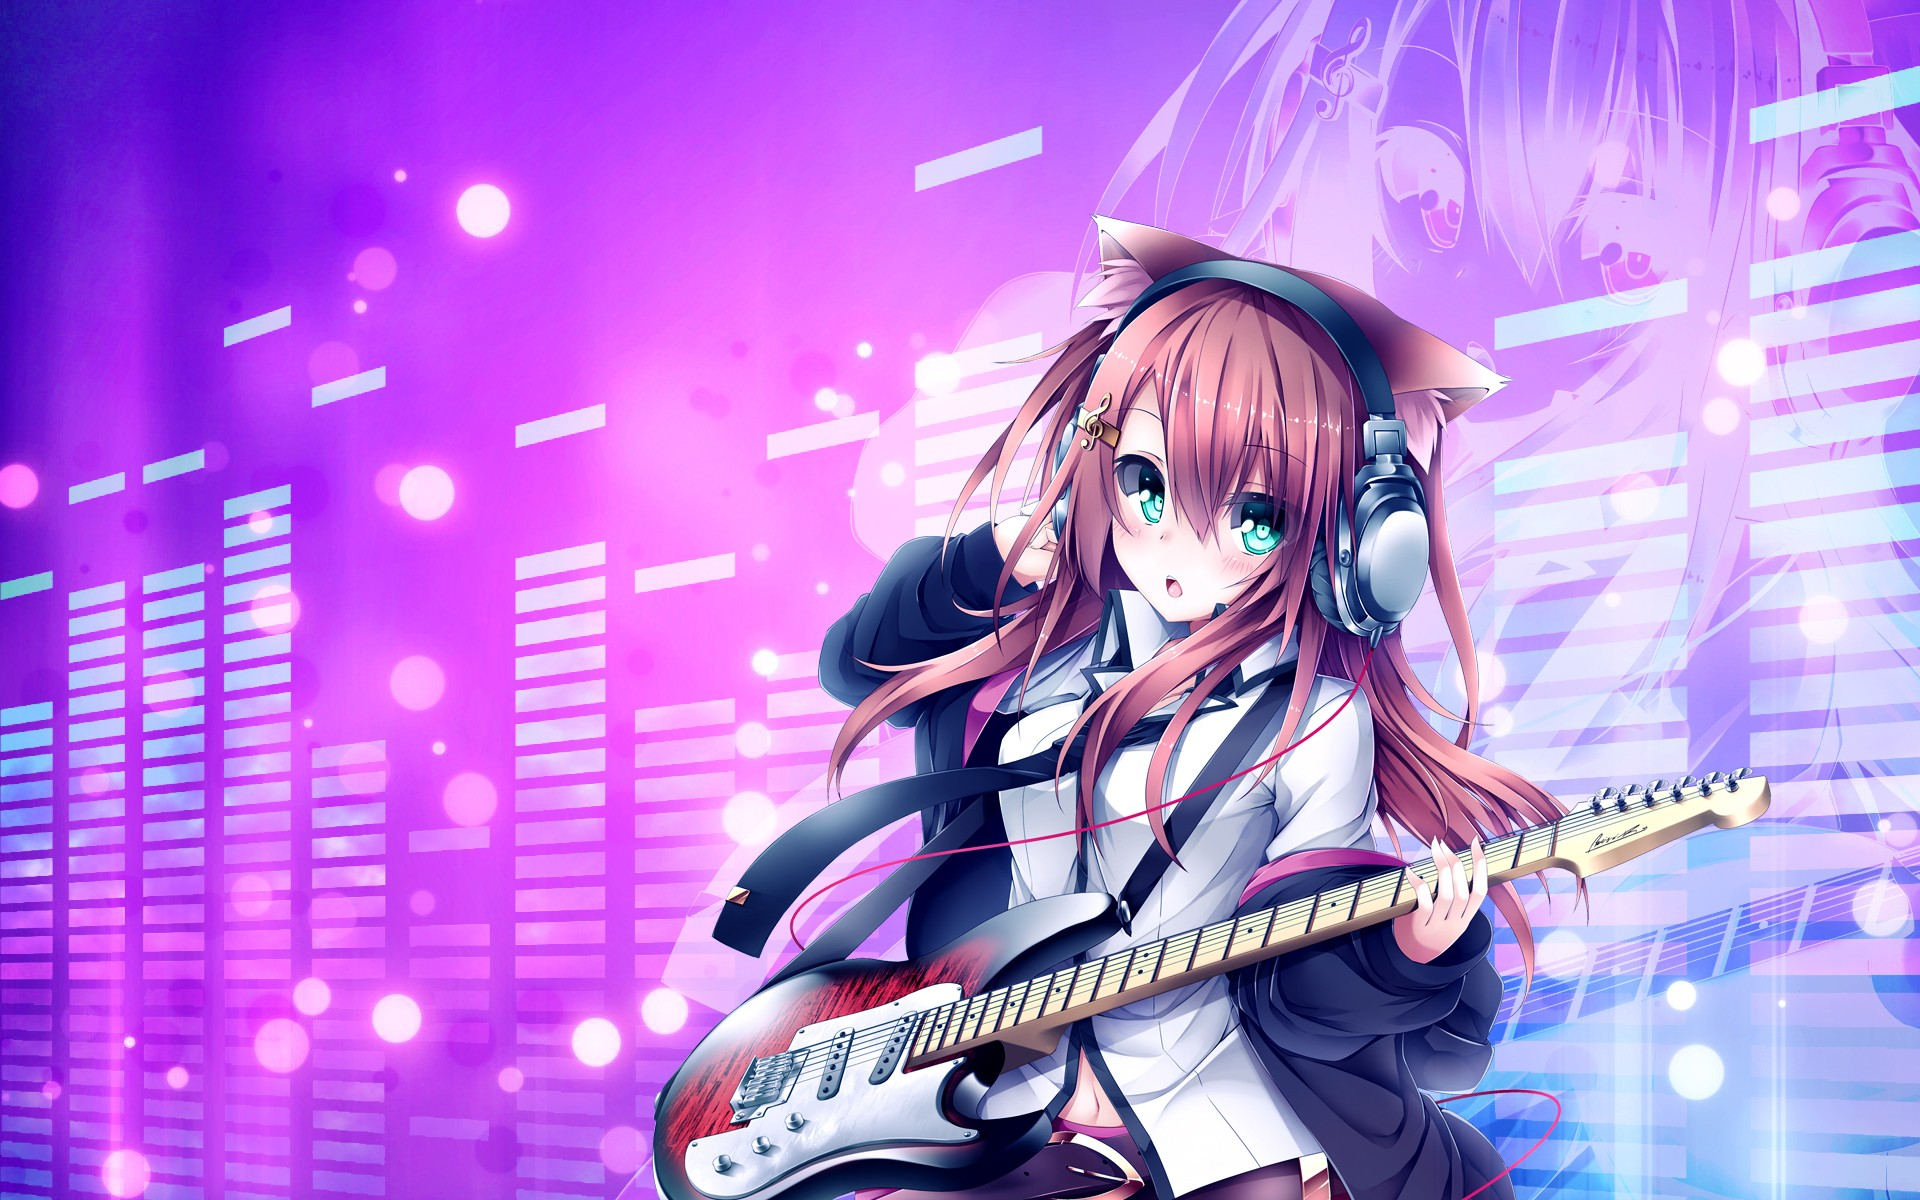 Anime girl background download free amazing full hd - Anime picture hd ...